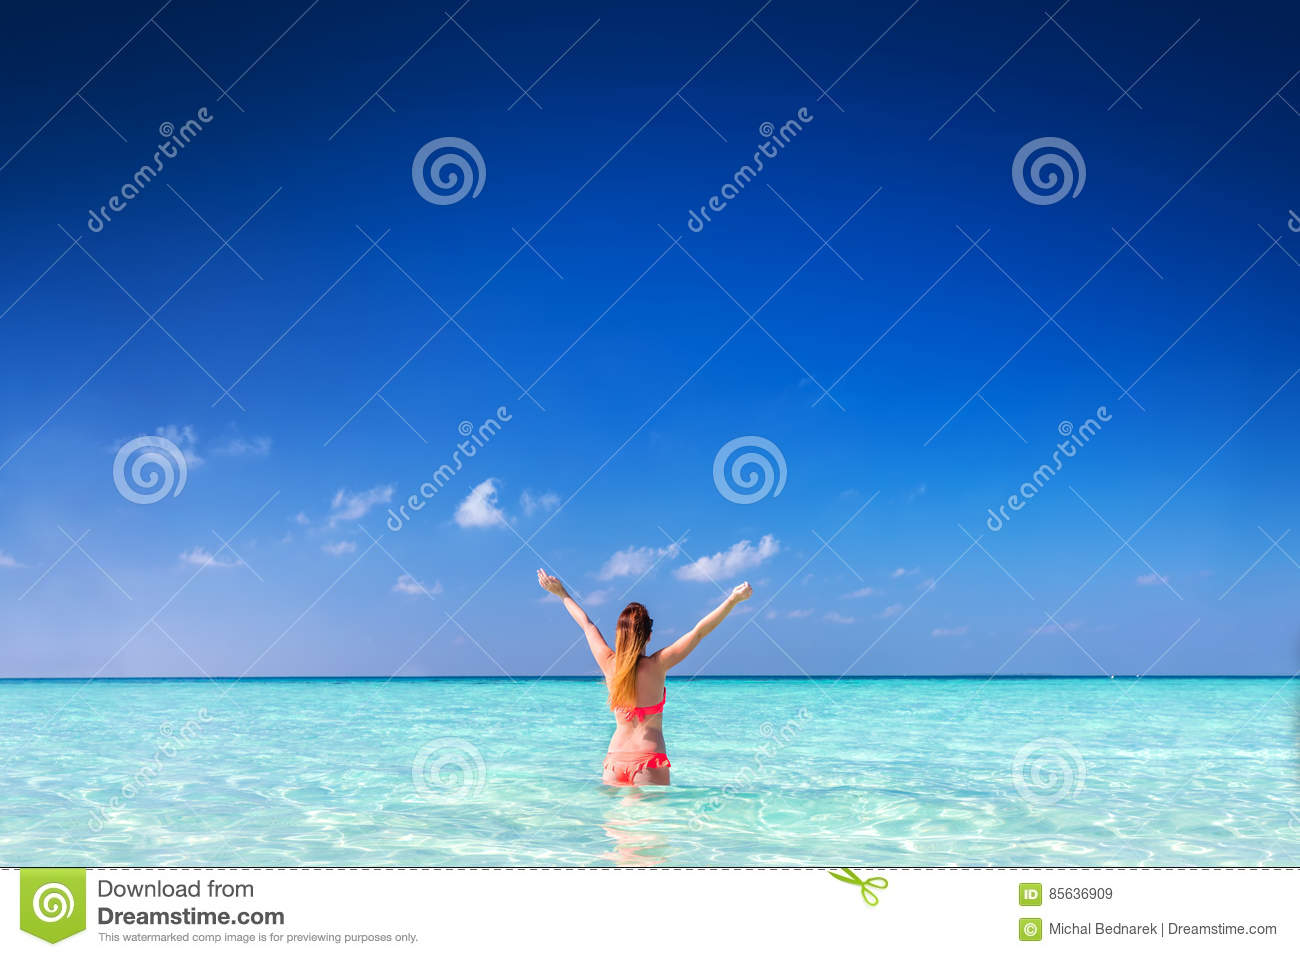 Beautiful young woman standing in the ocean with hands raised. Maldives